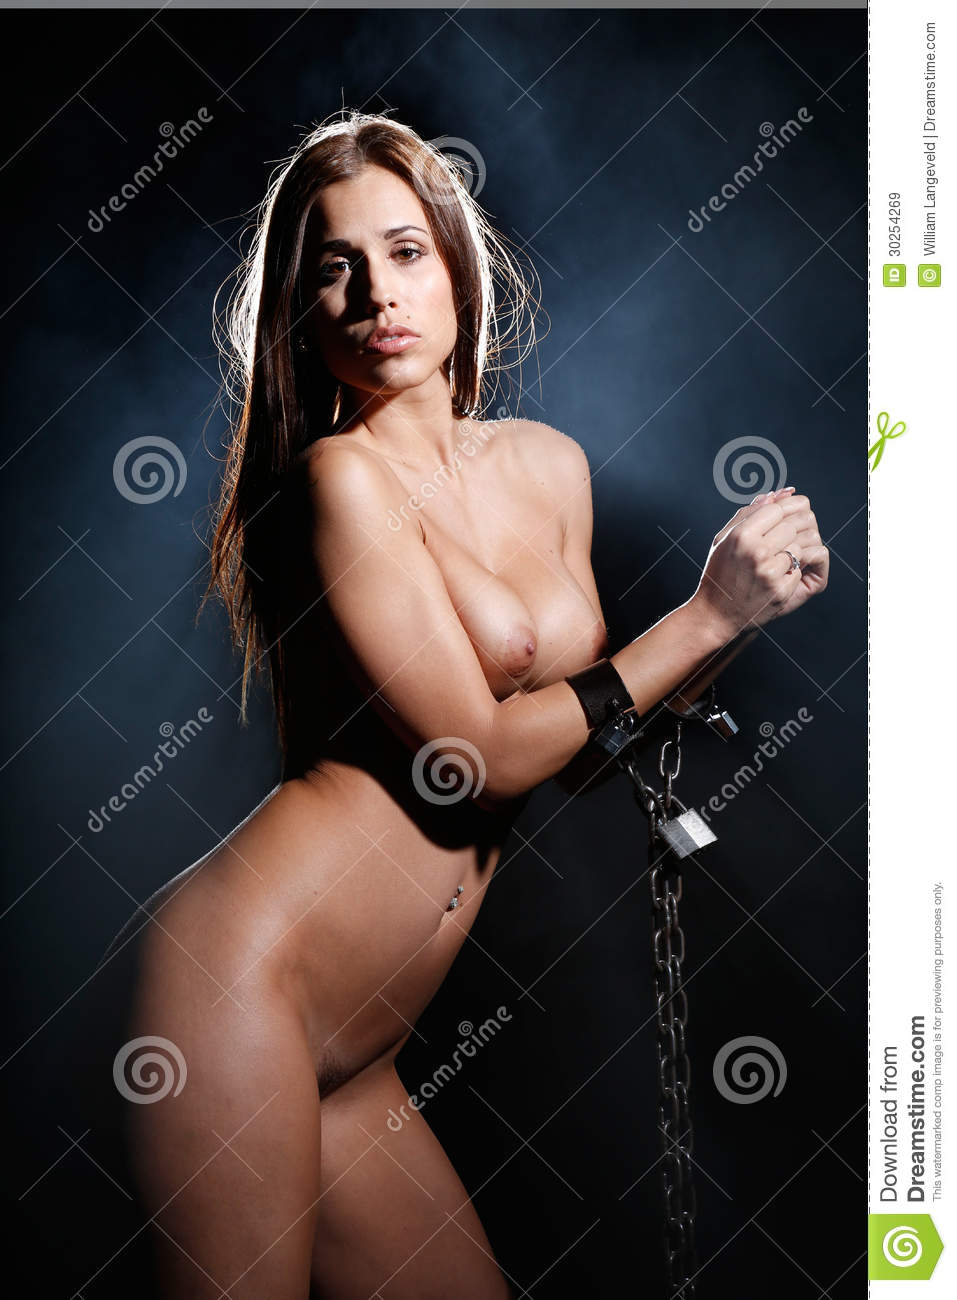 Chained up naked